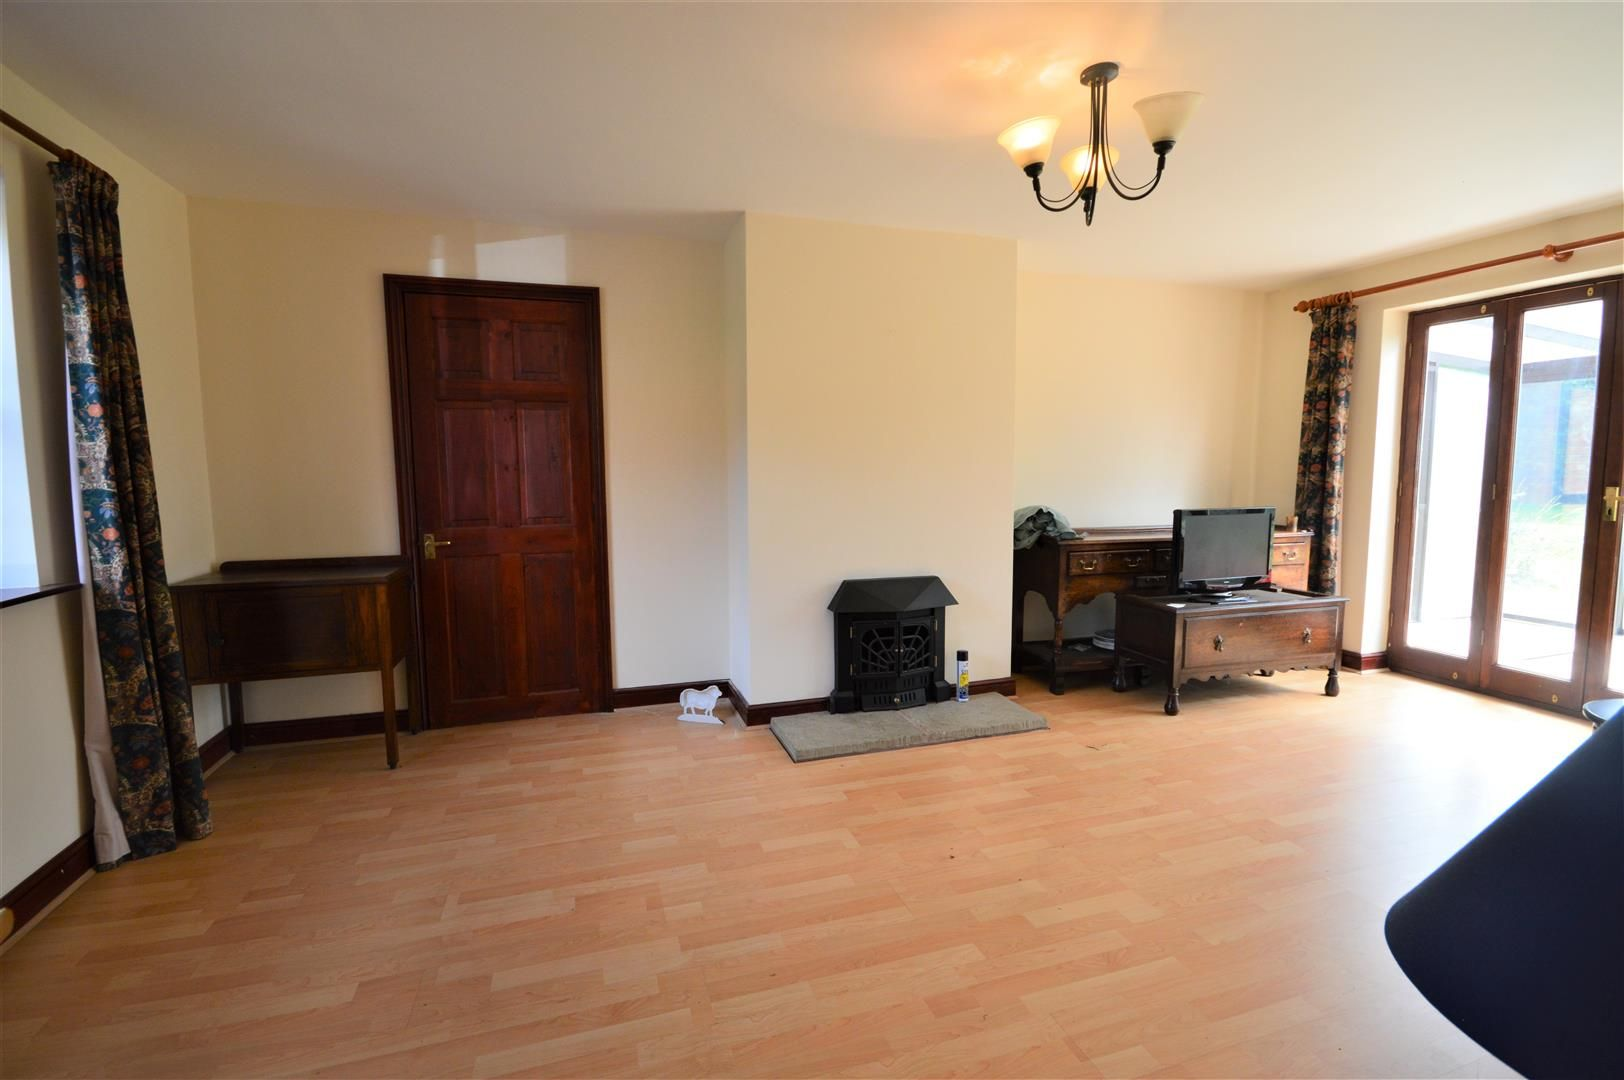 4 bed detached for sale in Bodenham  - Property Image 2